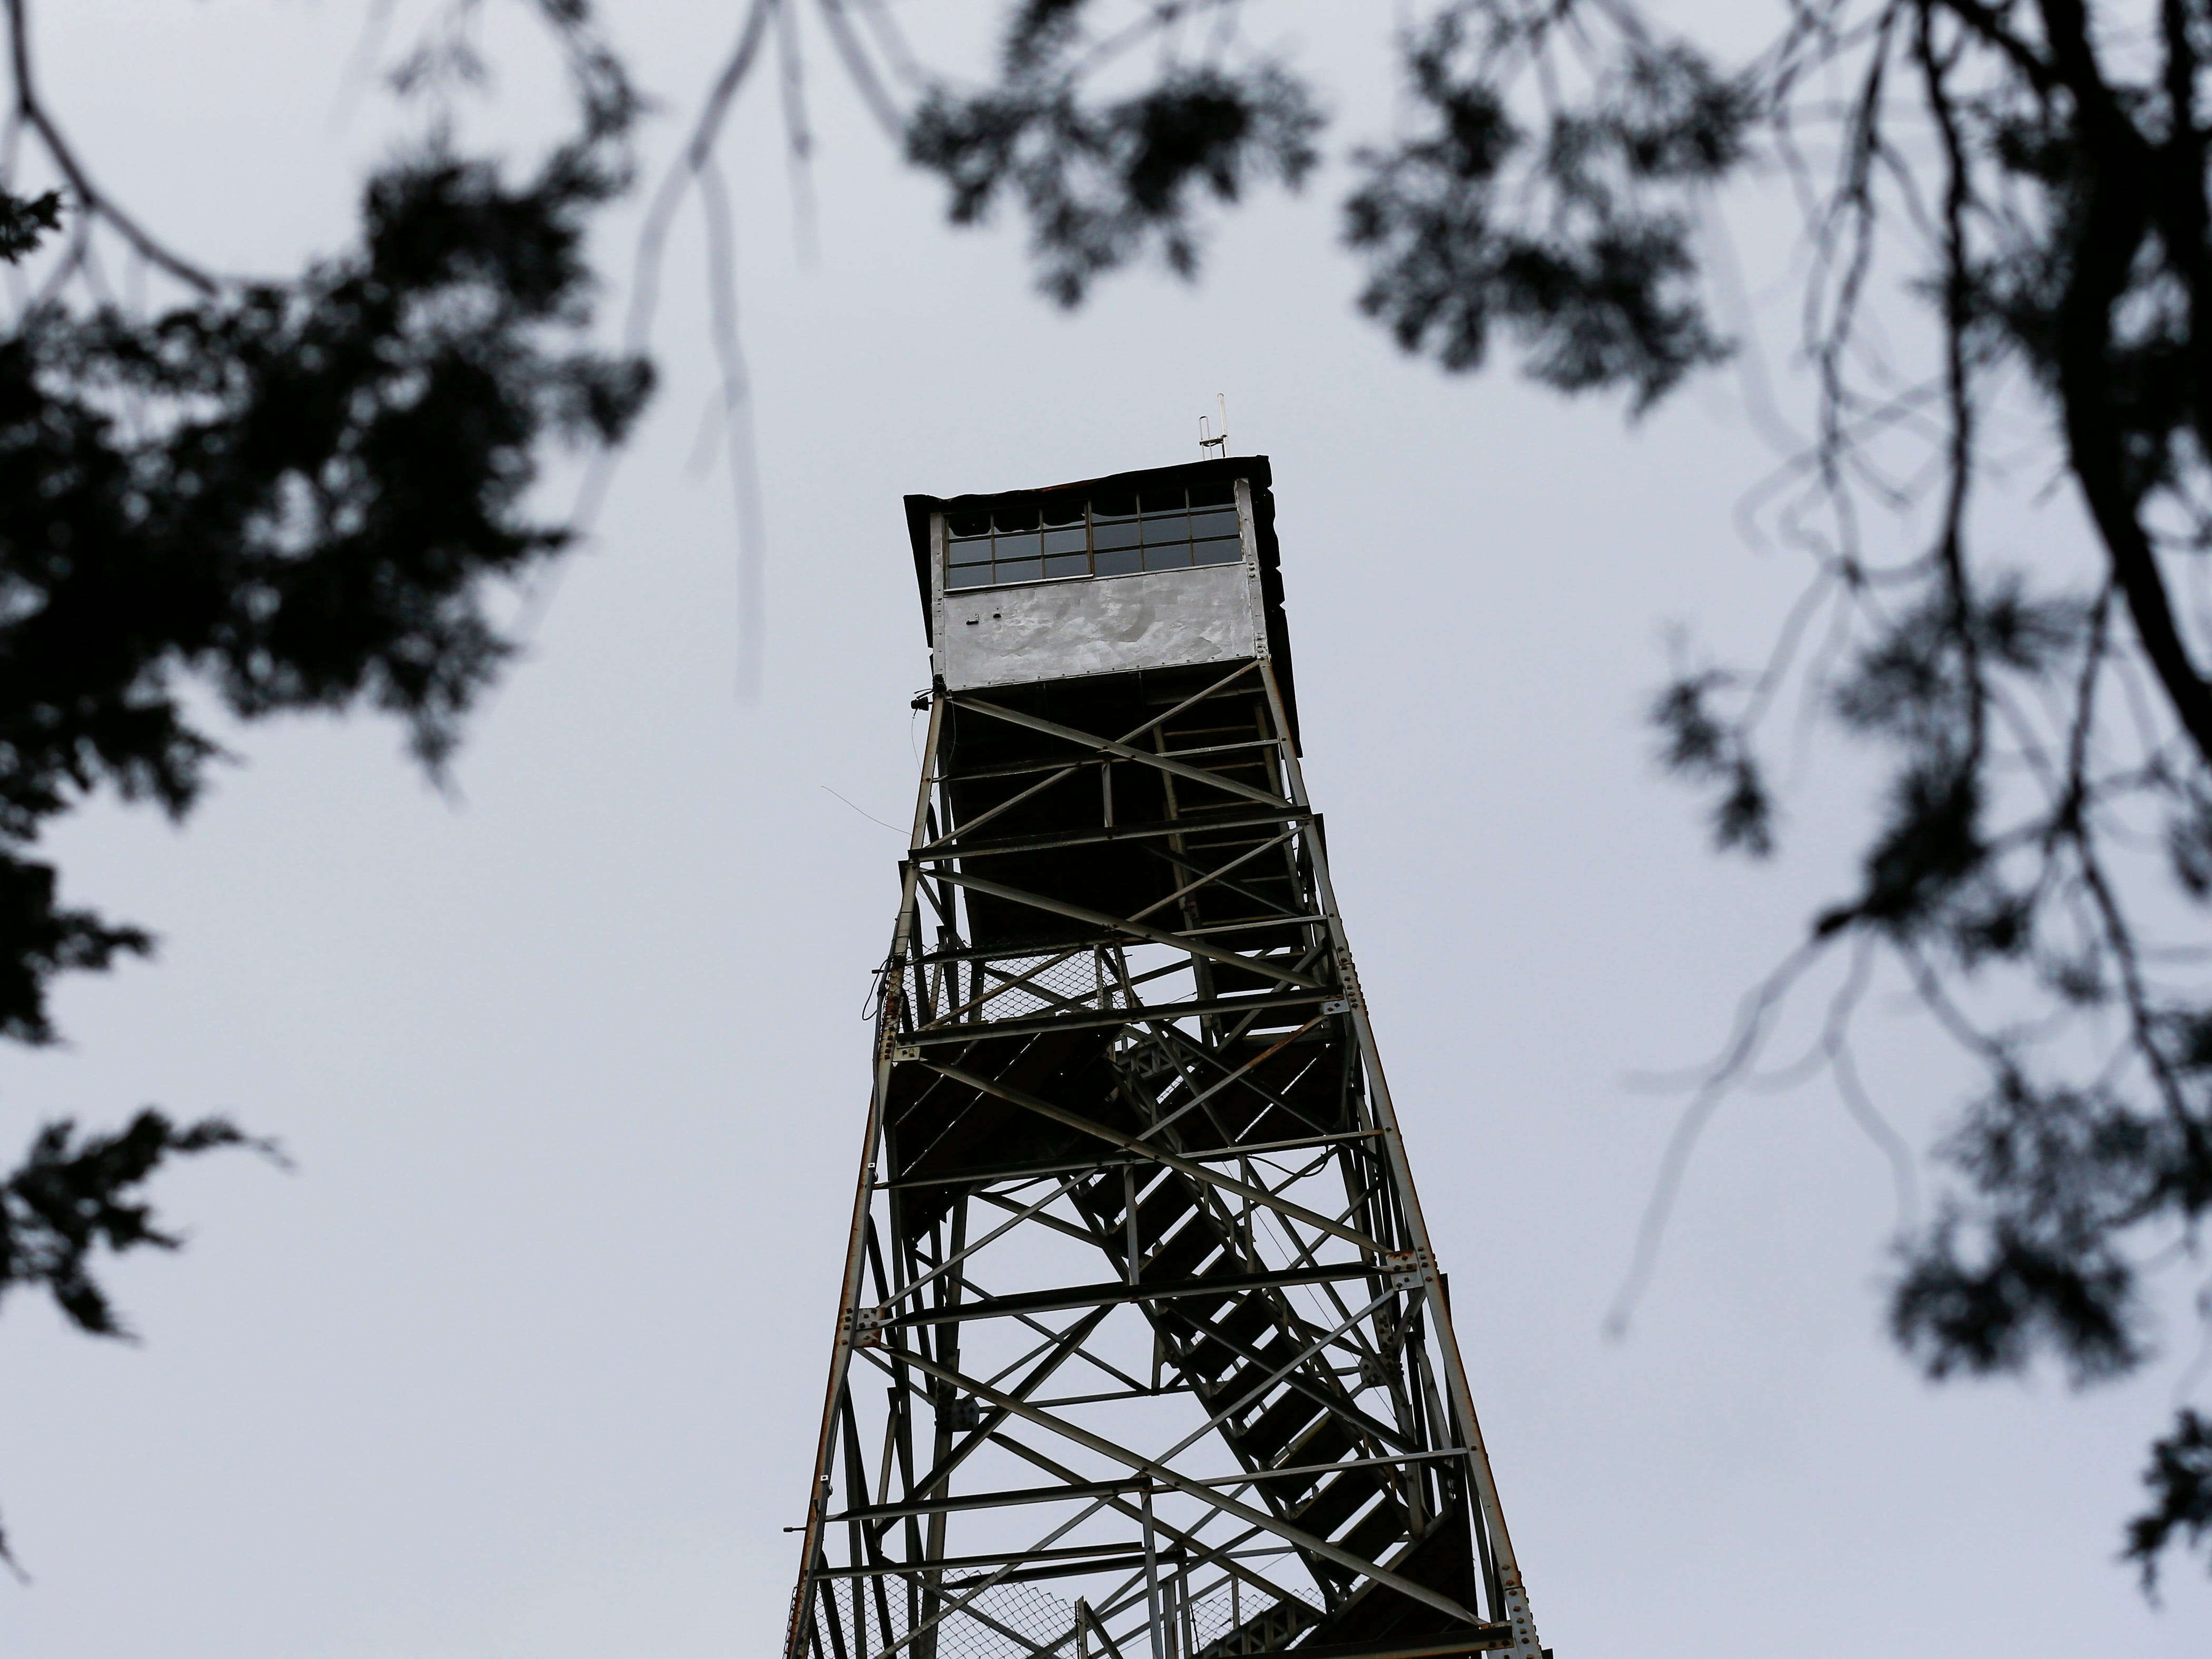 A fire watch tower in the Hercules Glades Wilderness Area on Friday, Nov. 9, 2018.